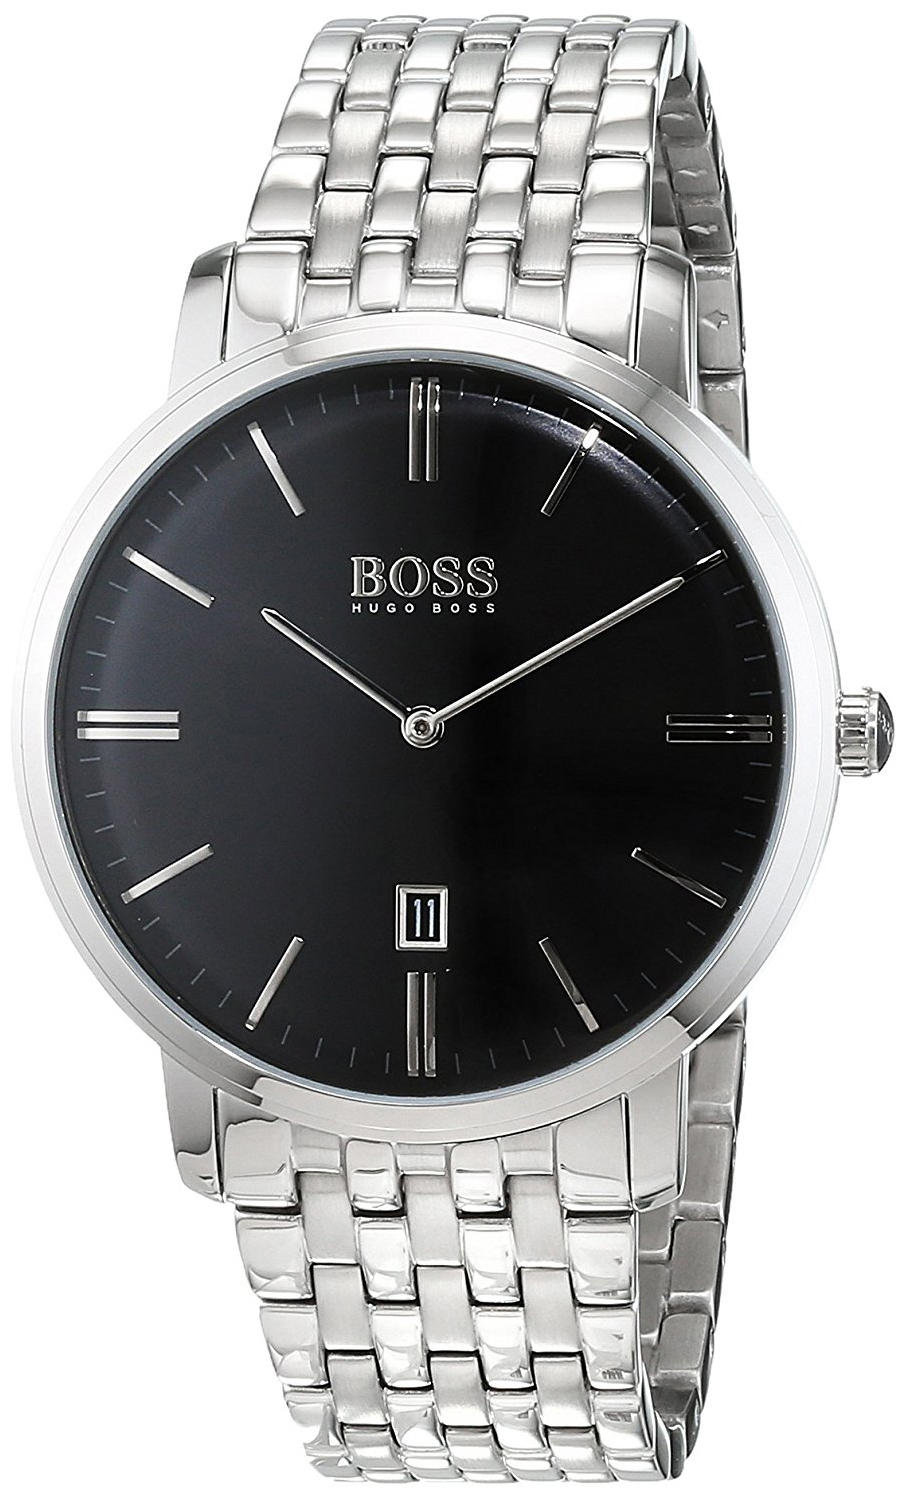 Hugo Boss Tradition Herrklocka 1513536 Svart/Stål Ø40 mm - Hugo Boss